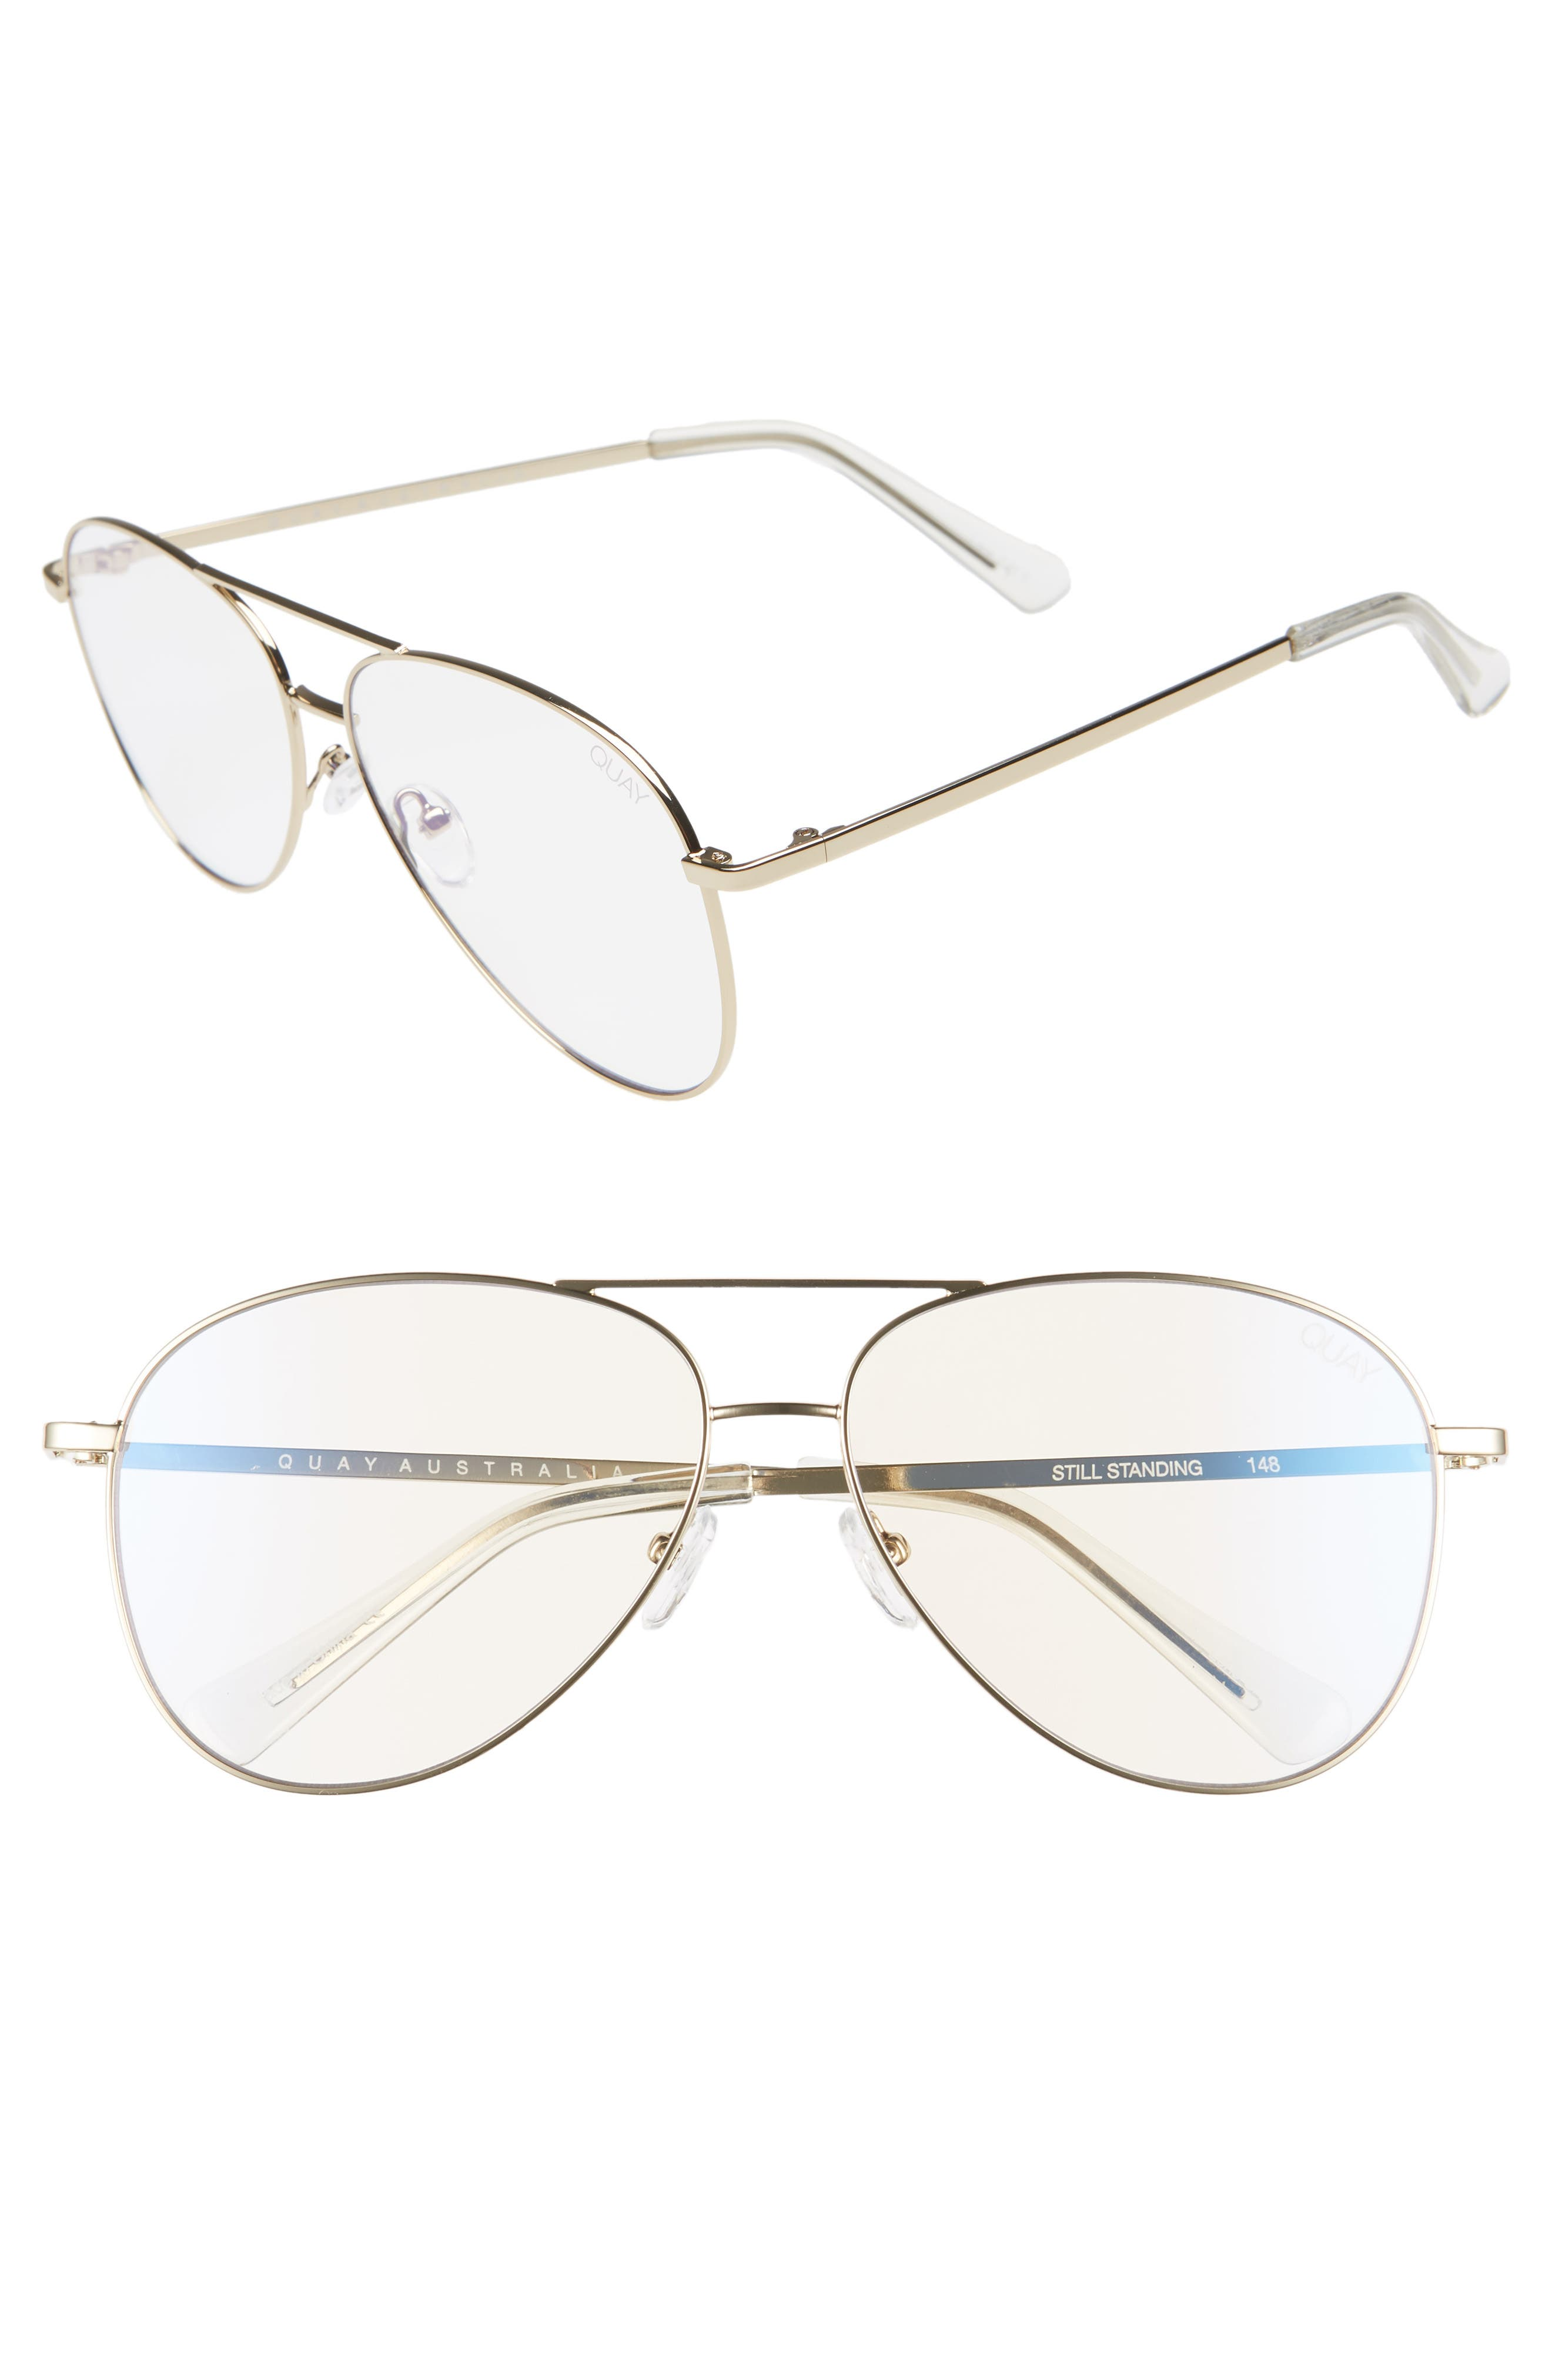 Still Standing 58mm Aviator Fashion Glasses,                         Main,                         color, GOLD / CLEAR BLUE LIGHT